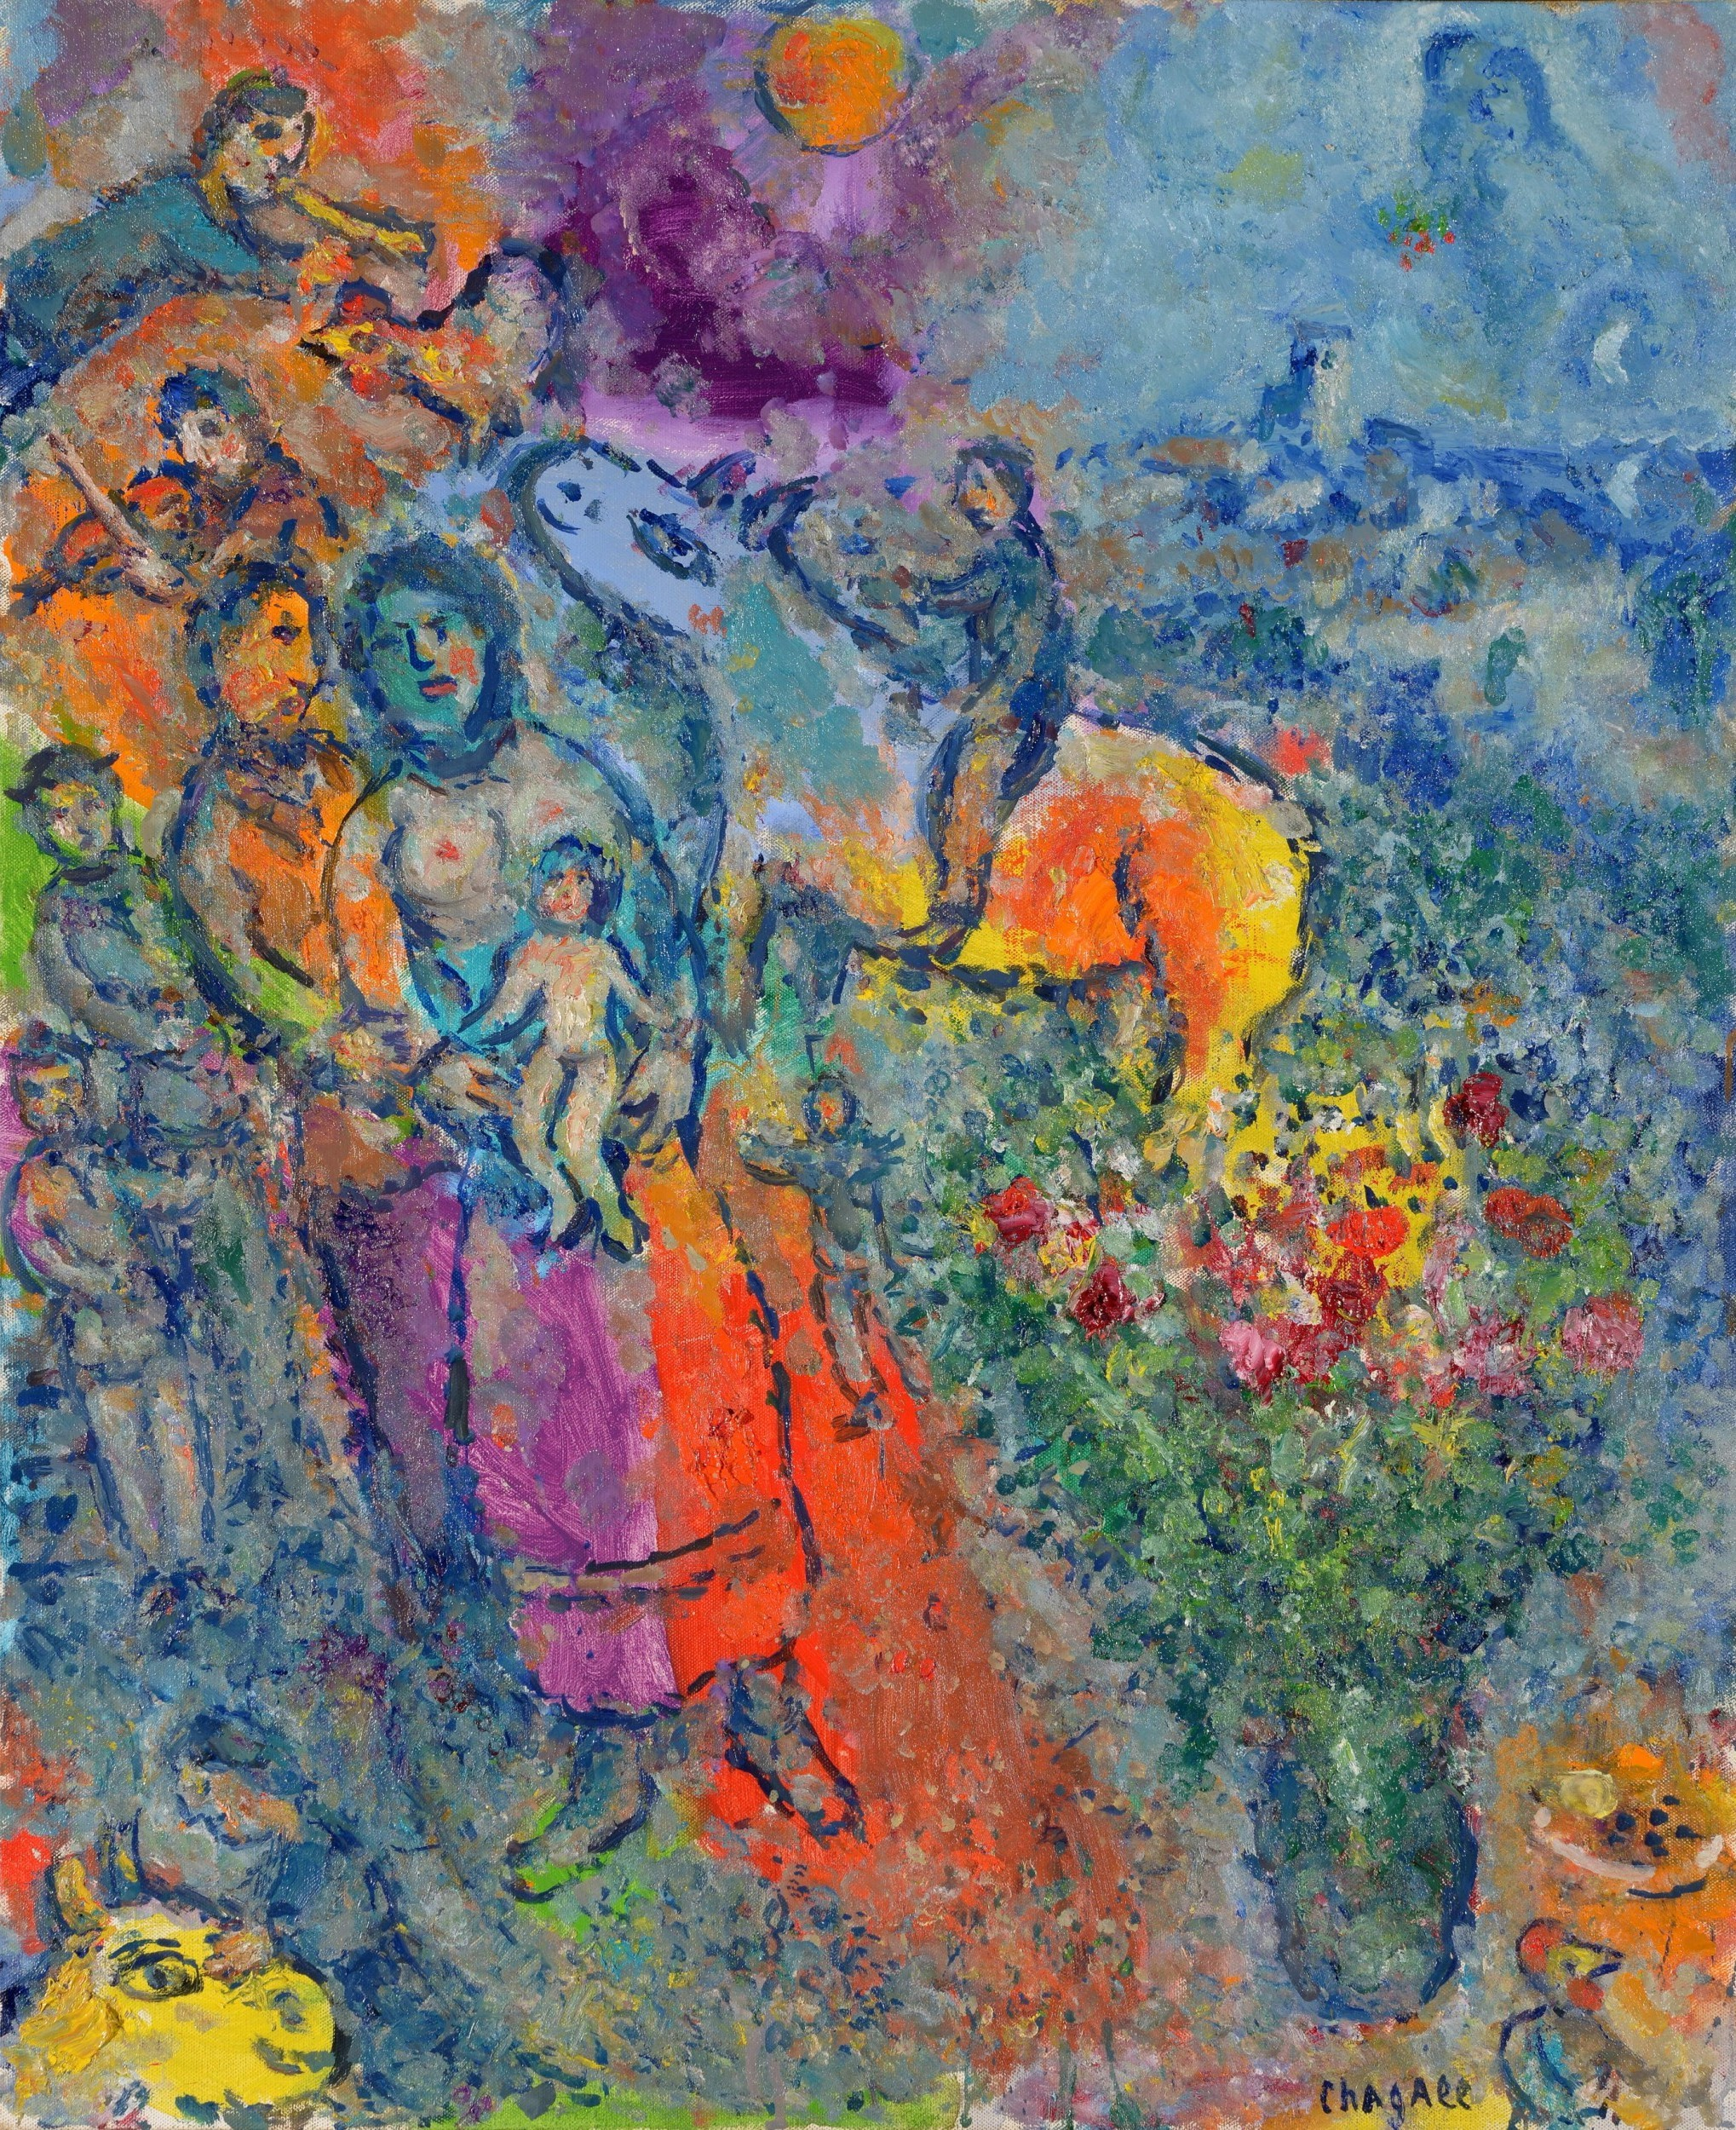 chagall auction price